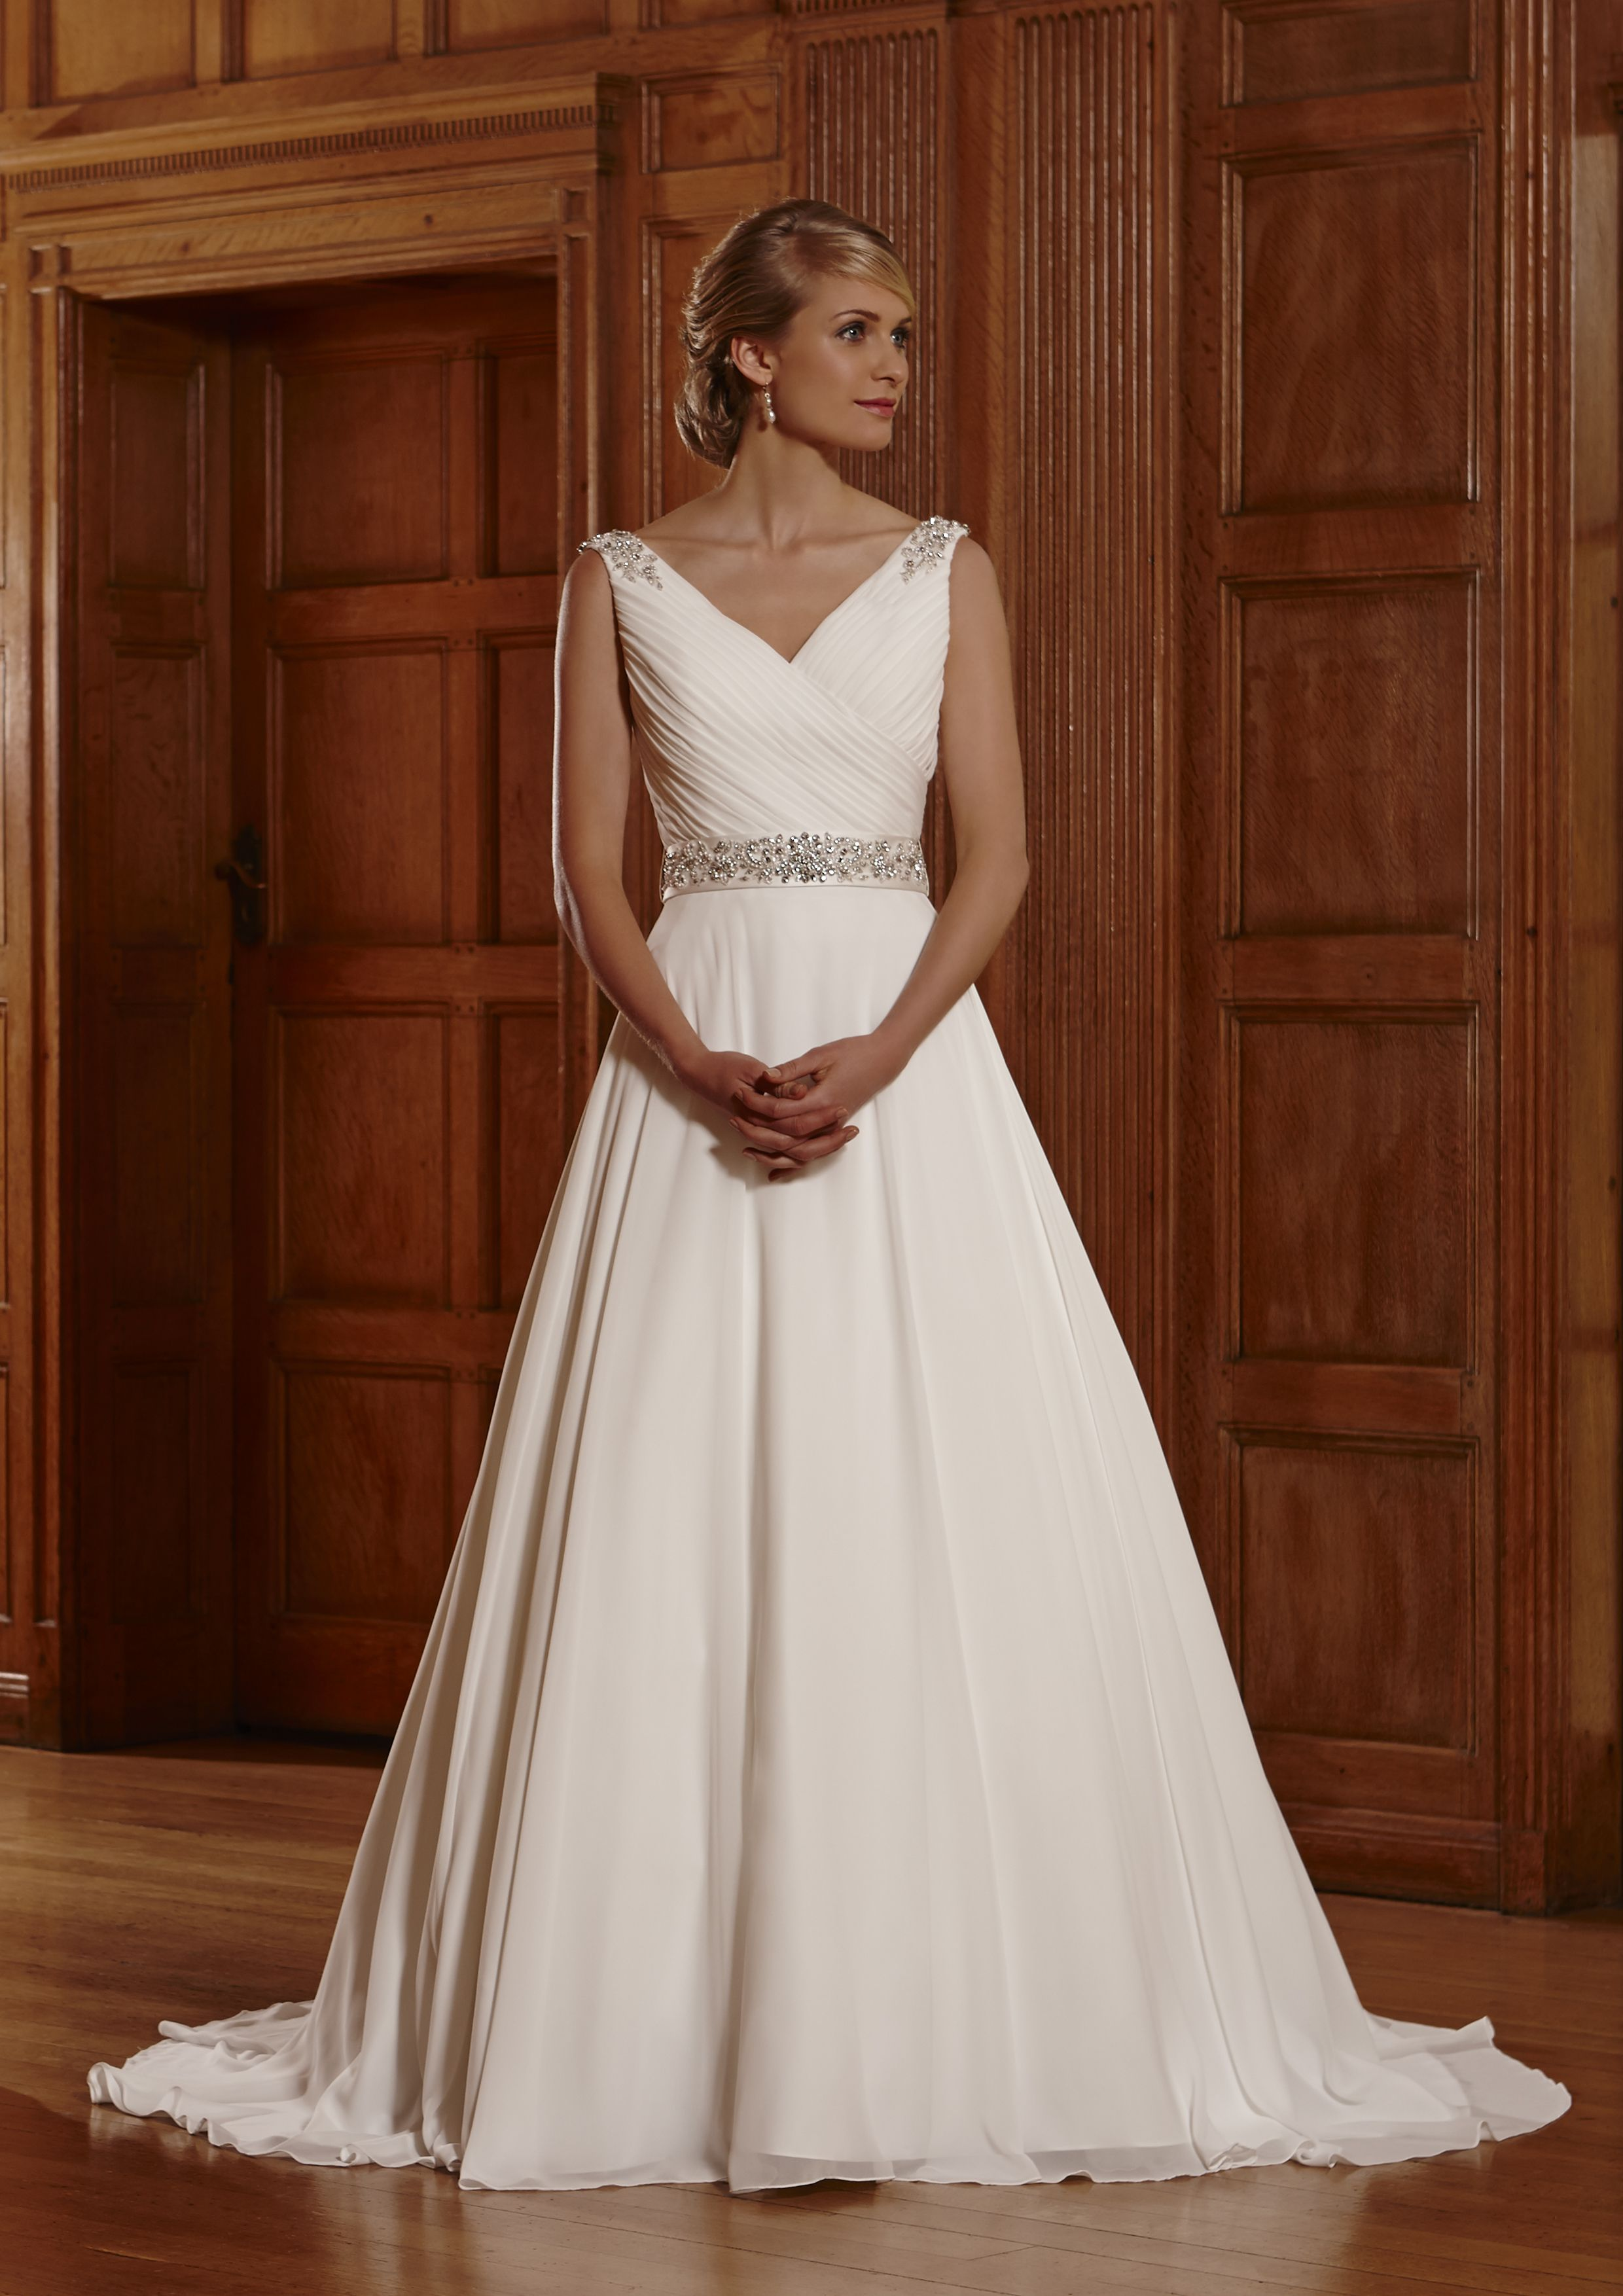 A Line (Princess Style) Wedding Dress for sophisticated